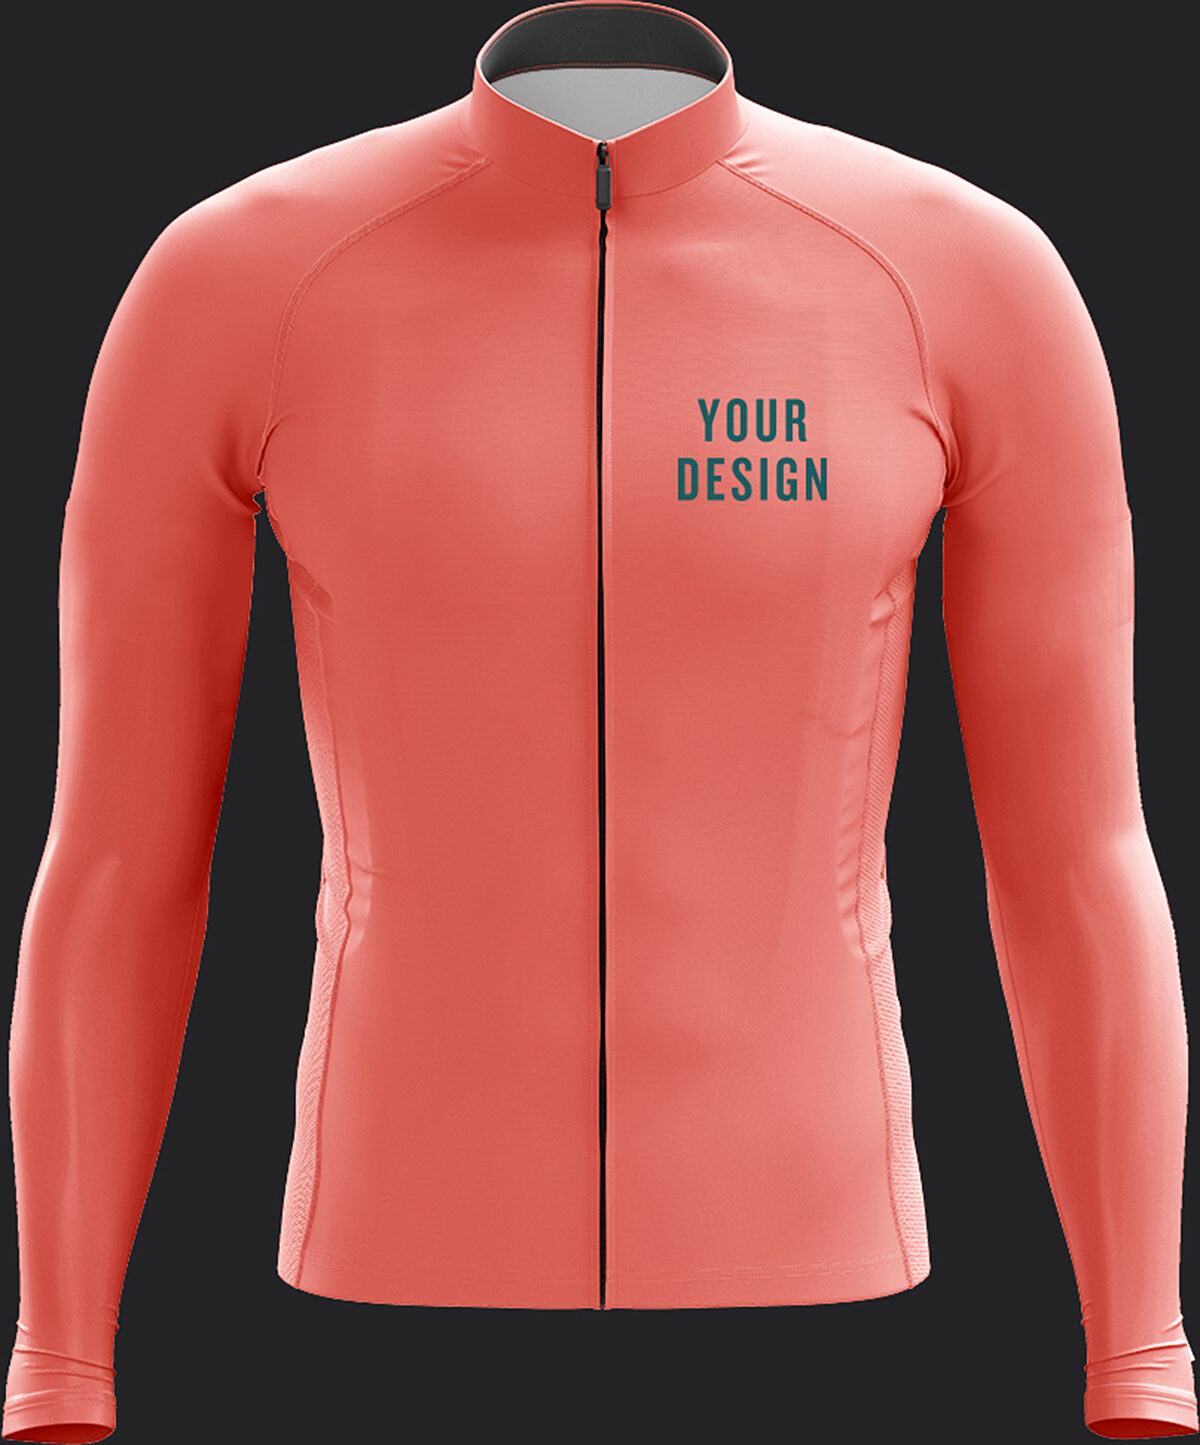 Bodhi cycling custom longsleeve women